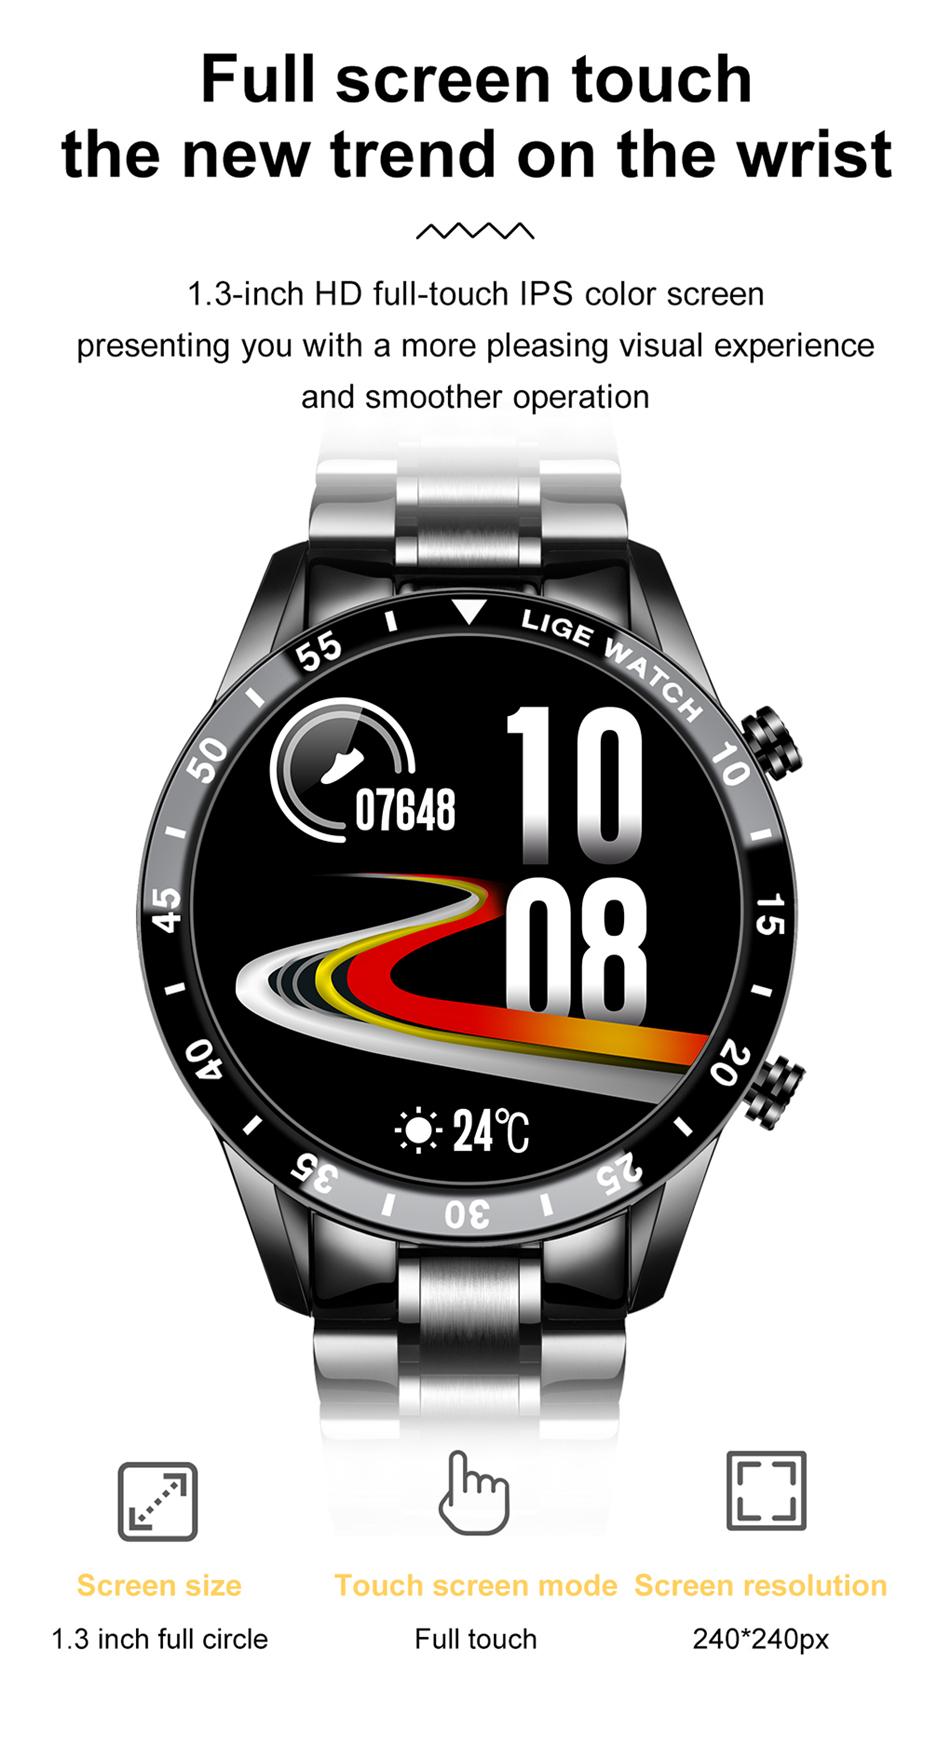 Hb4666ee89537405987306bab94e59713K LIGE 2021 New Men Smart Watch Bluetooth Call Watch IP67 Waterproof Sports Fitness Watch For Android IOS Smart Watch 2021 + Box